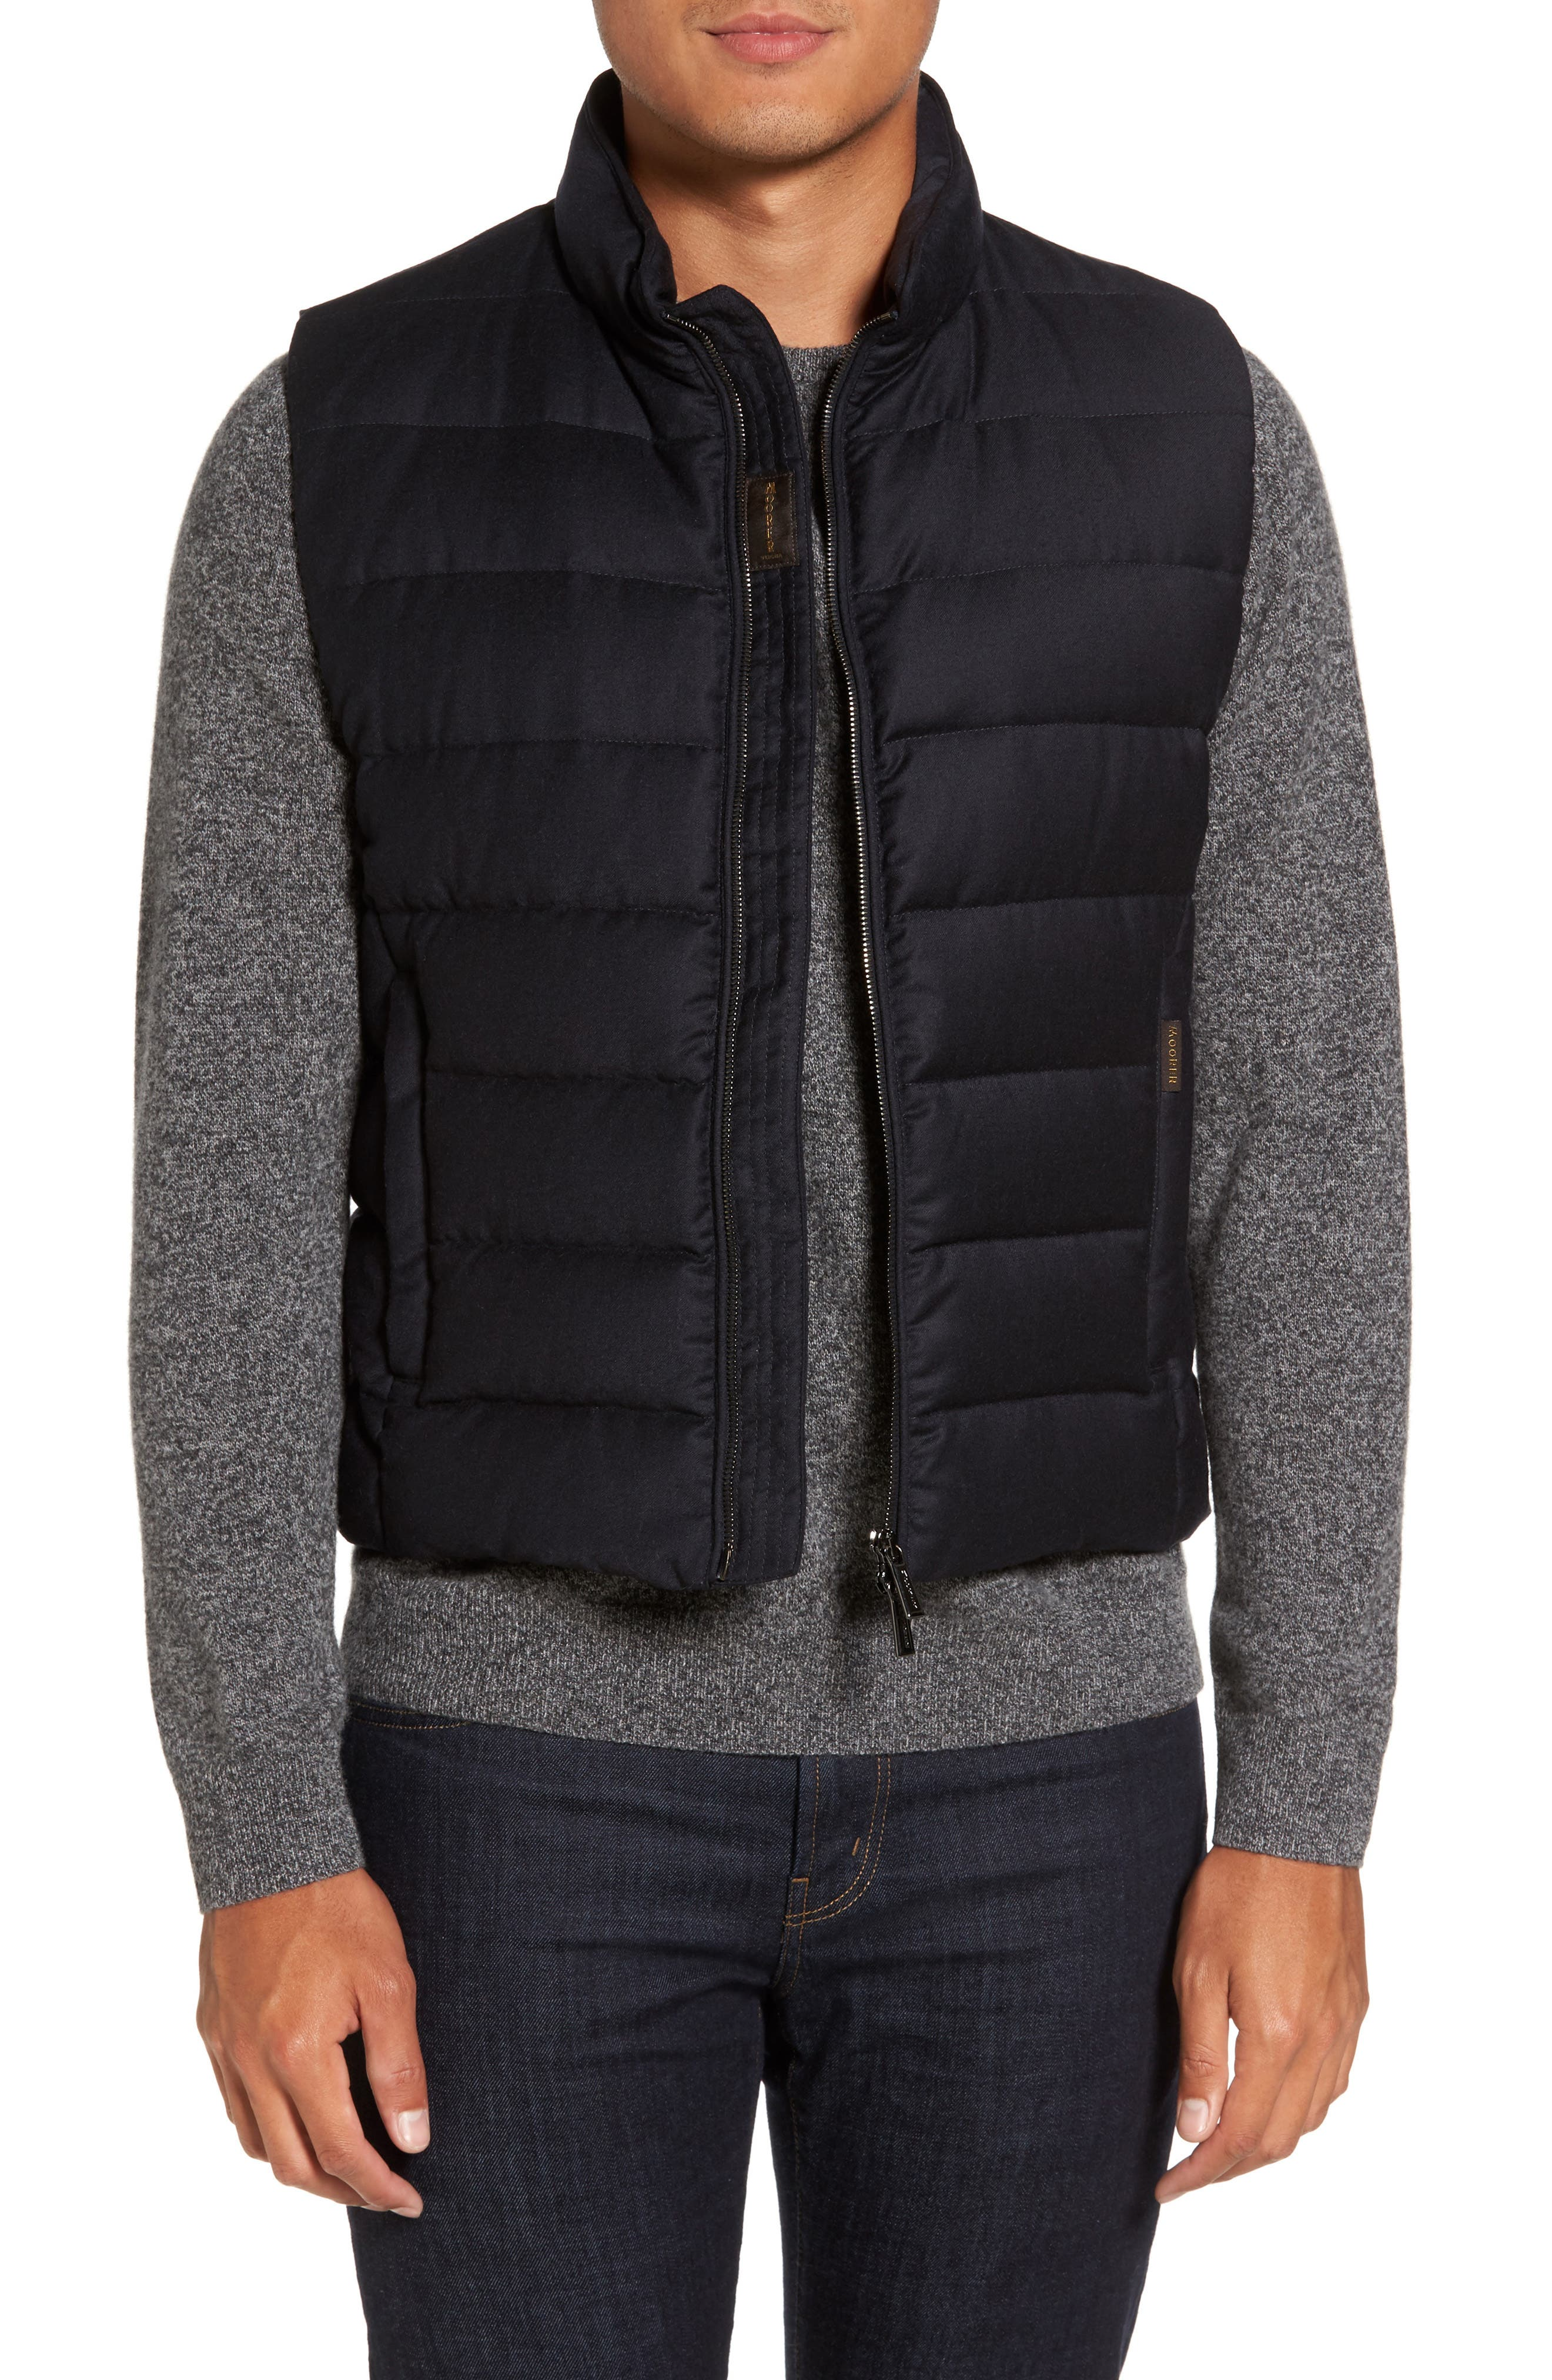 Oliver L Wool & Cashmere Flannel Waterproof Vest,                         Main,                         color, 402